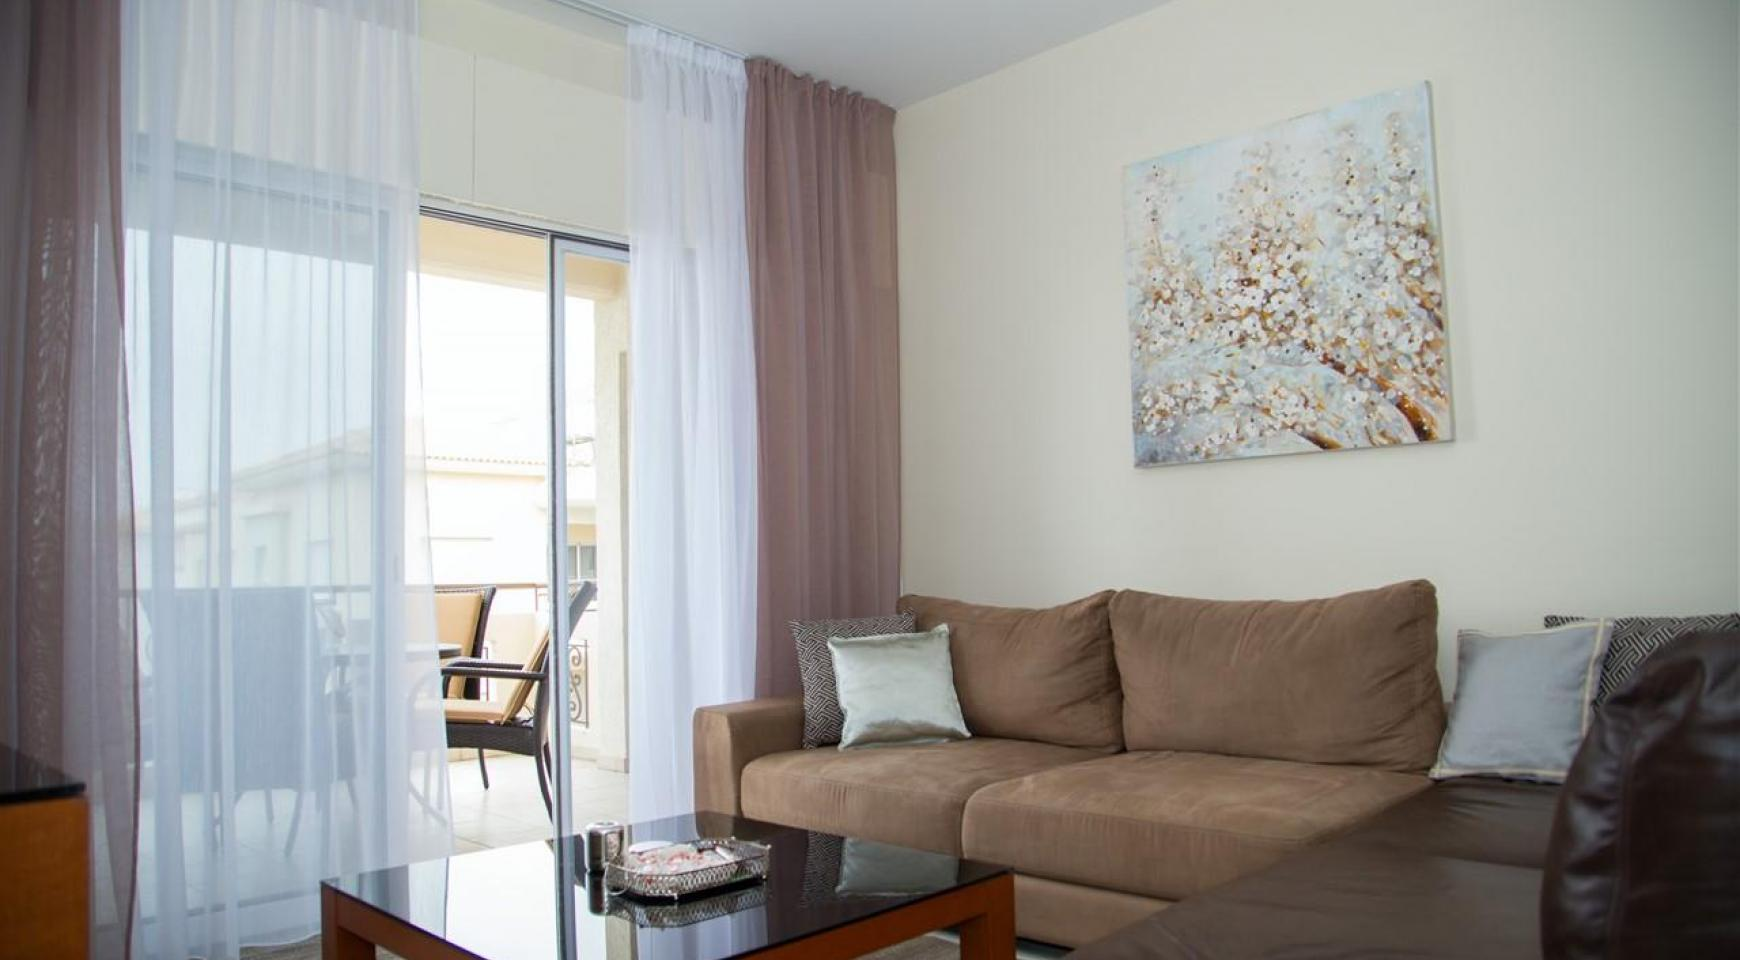 2 Bedroom Apartment in the Complex near the Sea - 4